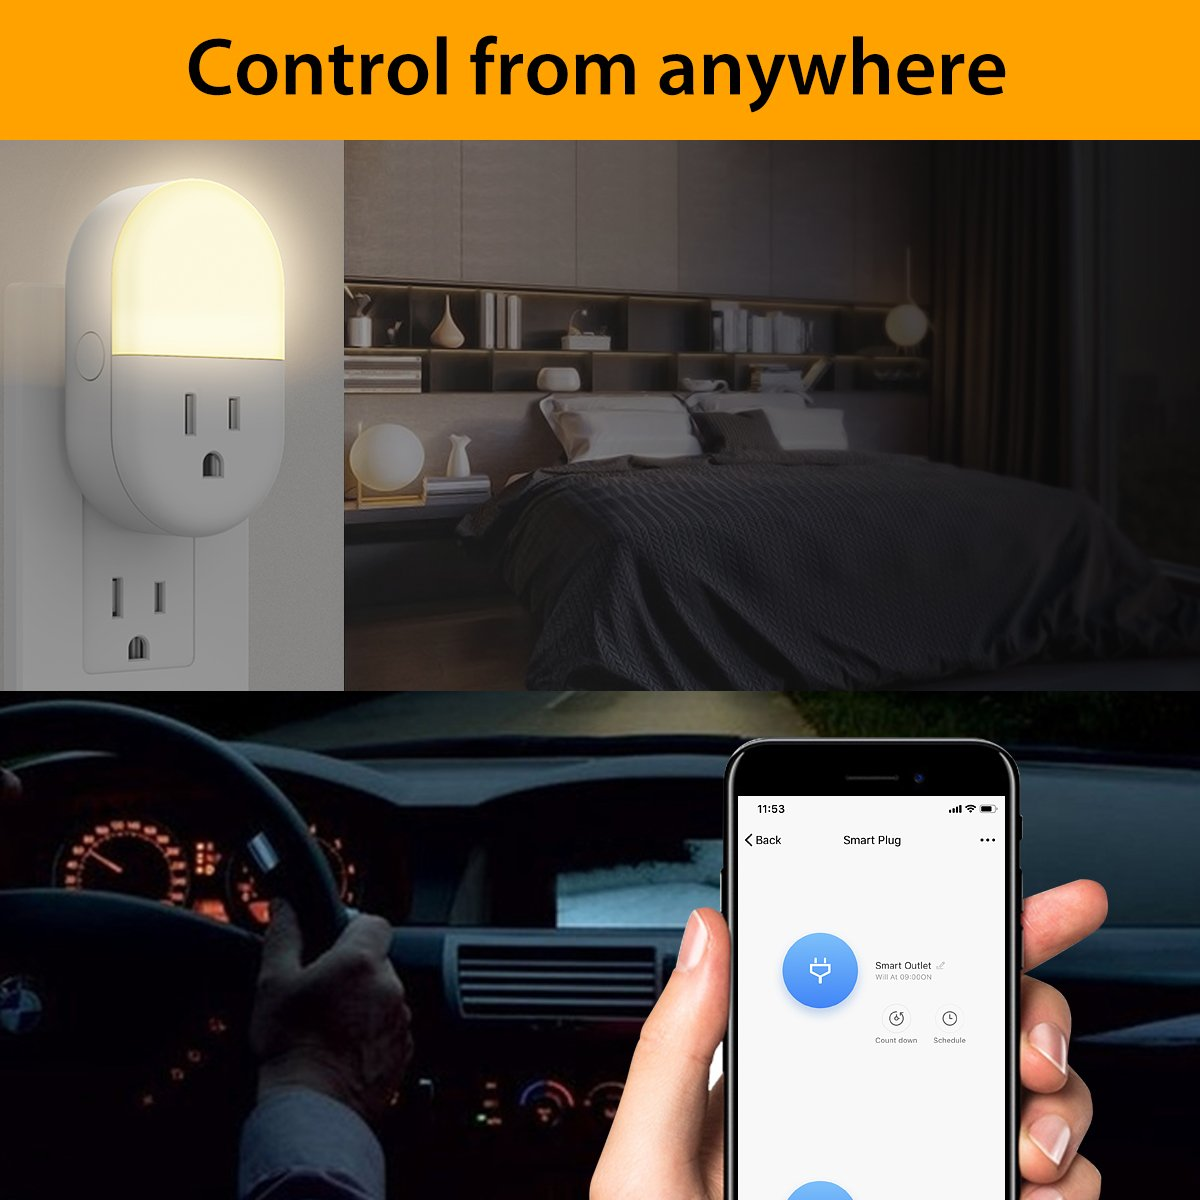 iMah Night Light Plug-in, Smart Plug works with Alexa Google Assistant IFTTT, WiFi Smart Plug Mini Outlet Socket control your Devices from Anywhere (4-Pack) by iMah (Image #8)